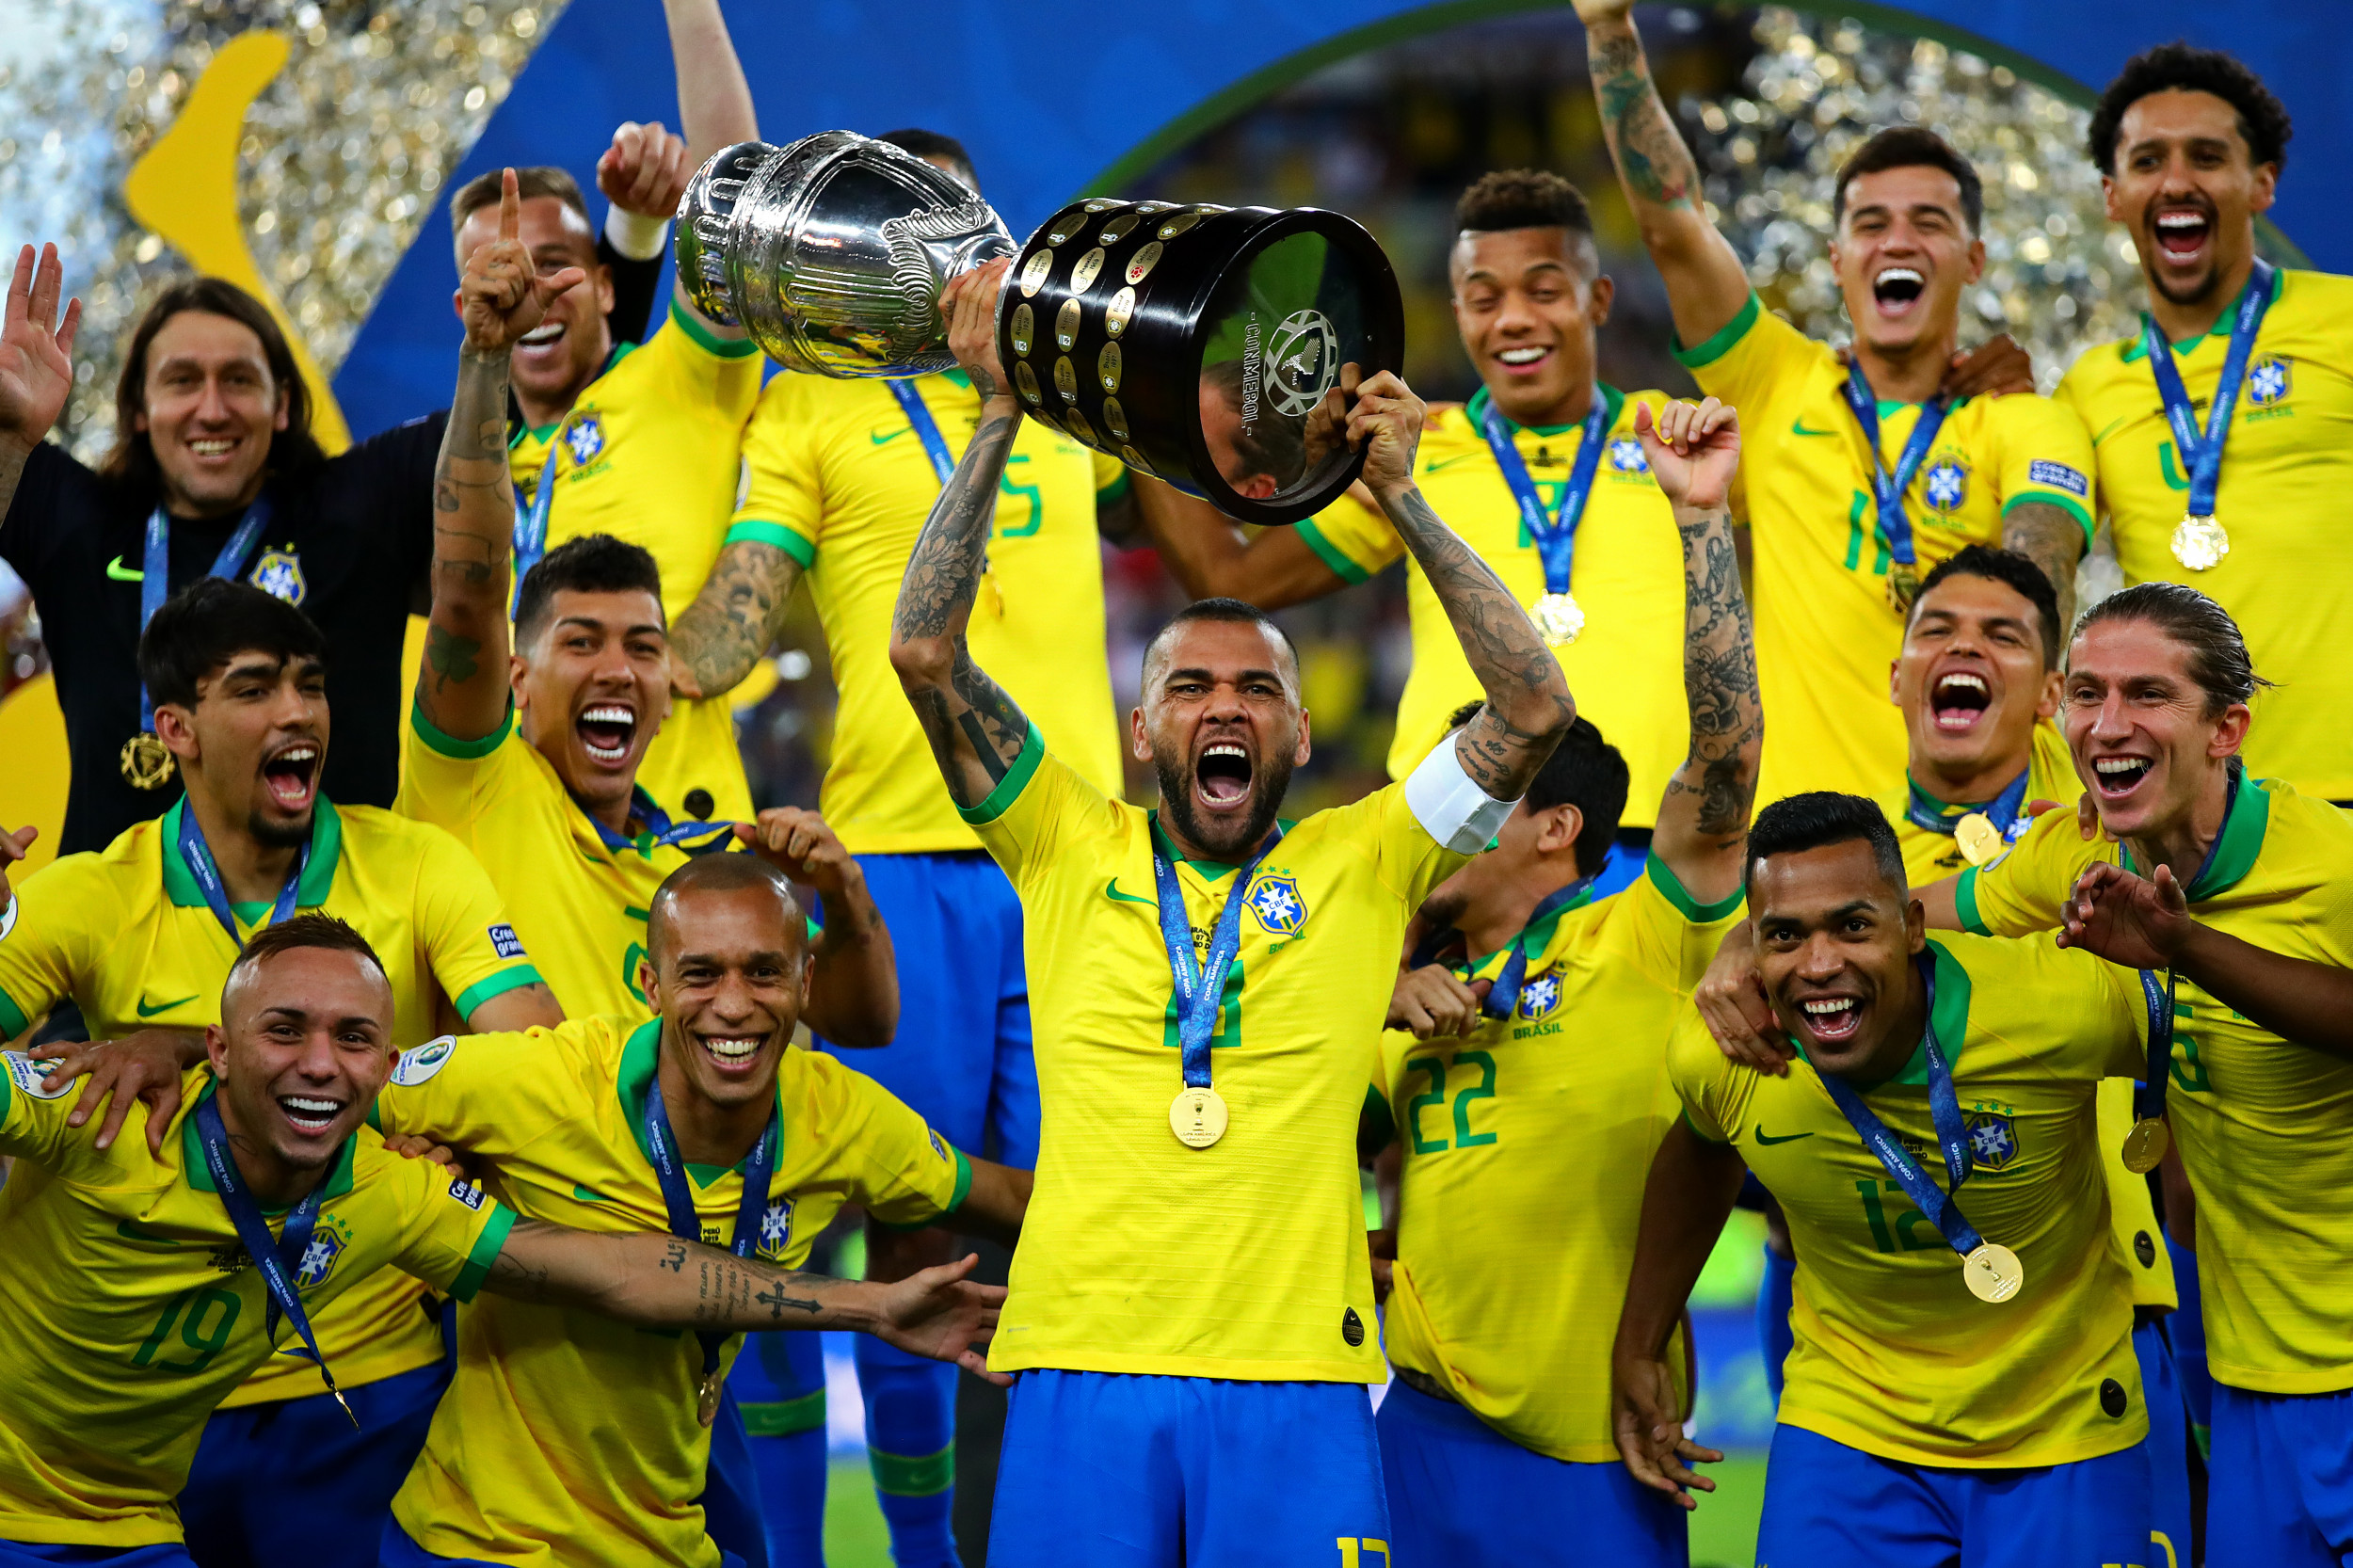 How to watch the 2021 Copa America on TV and online in the U.S.